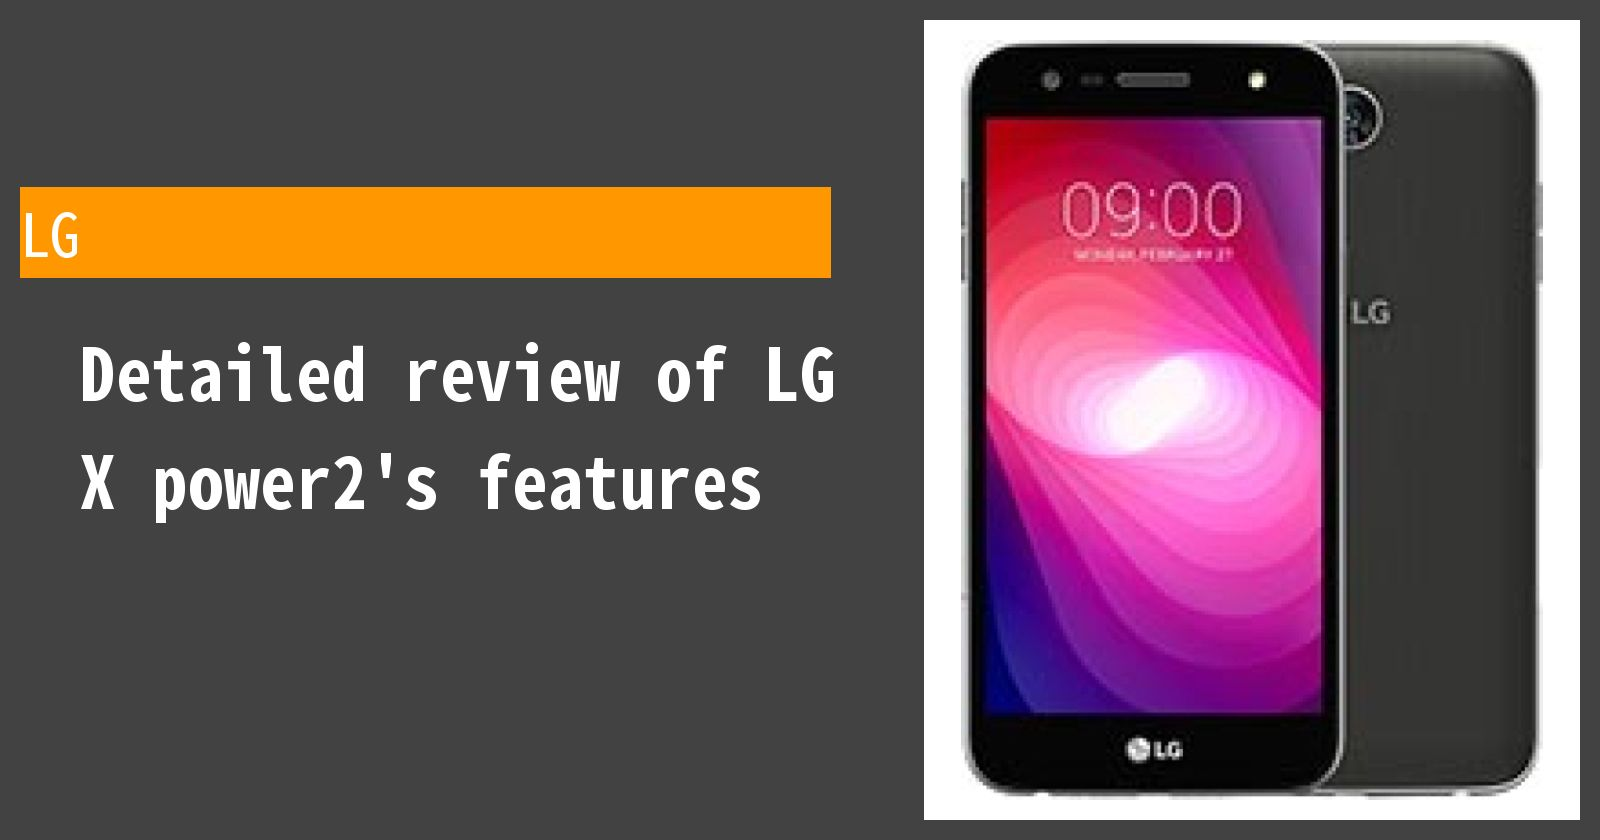 Detailed review of LG X power2's features